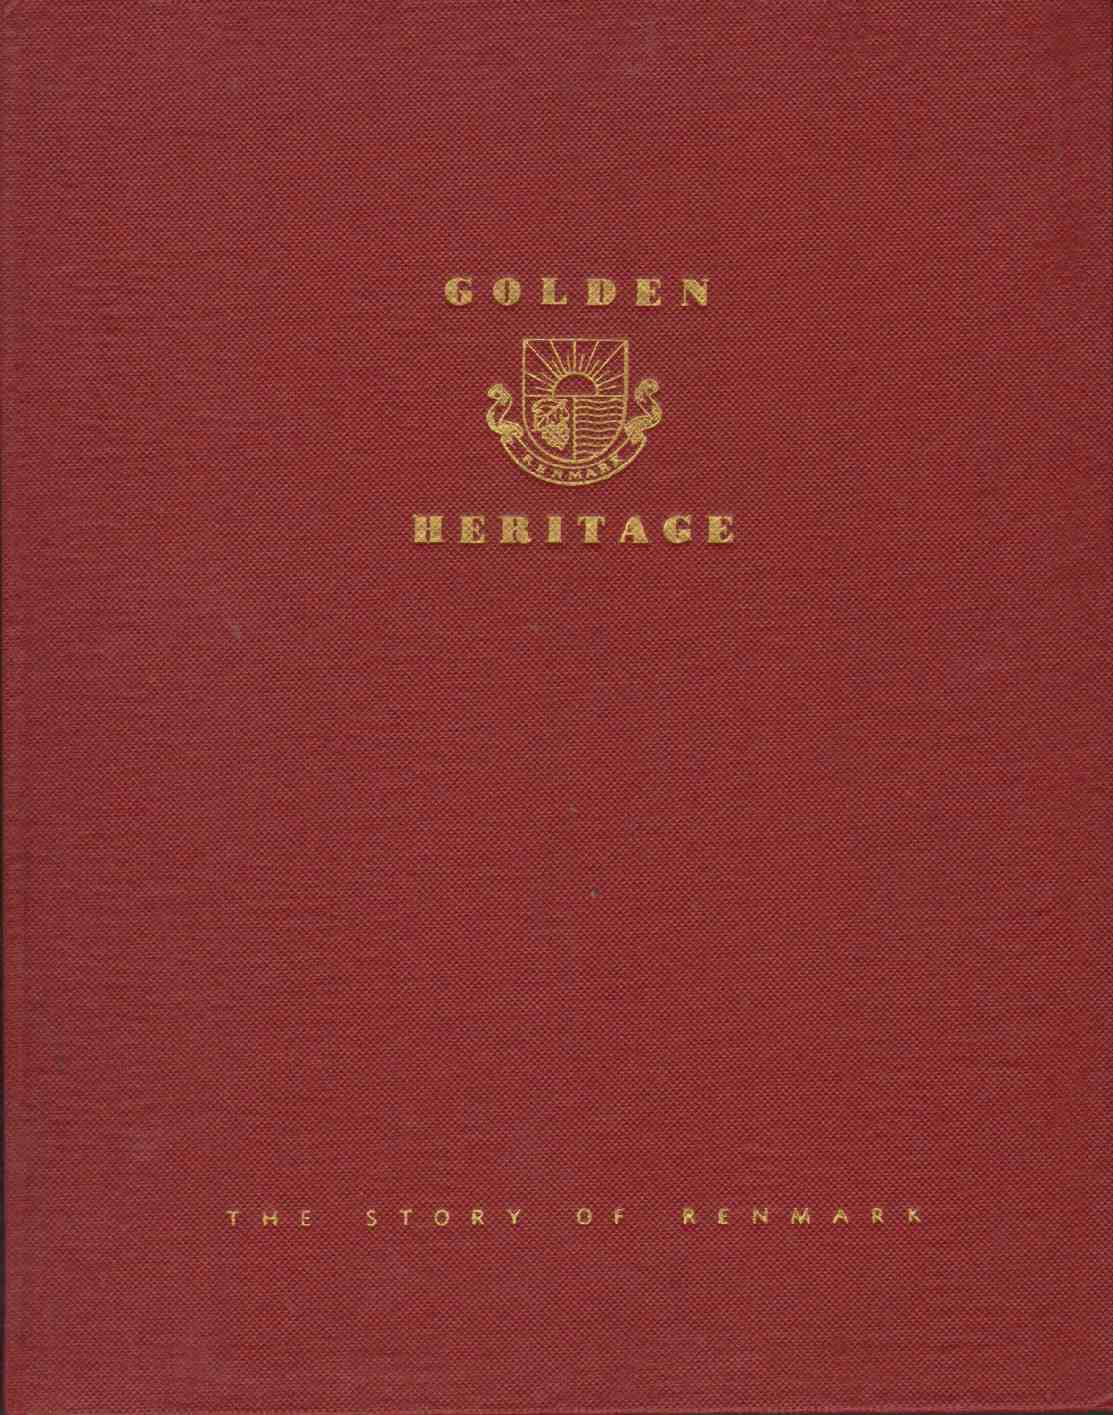 Image for GOLDEN HERITAGE - A STORY OF RENMARK - To commemorate the visit to Renmark,  South Australia, on March 25, 1954, of Her Majesty Queen Elizabeth II and His Royal Highness the Duke of Edinburgh and to Honour the Pioneers, Whose Faith, Strength and Courage Created out of Adversity the Foundation for a New and Prosperous Way of Life.